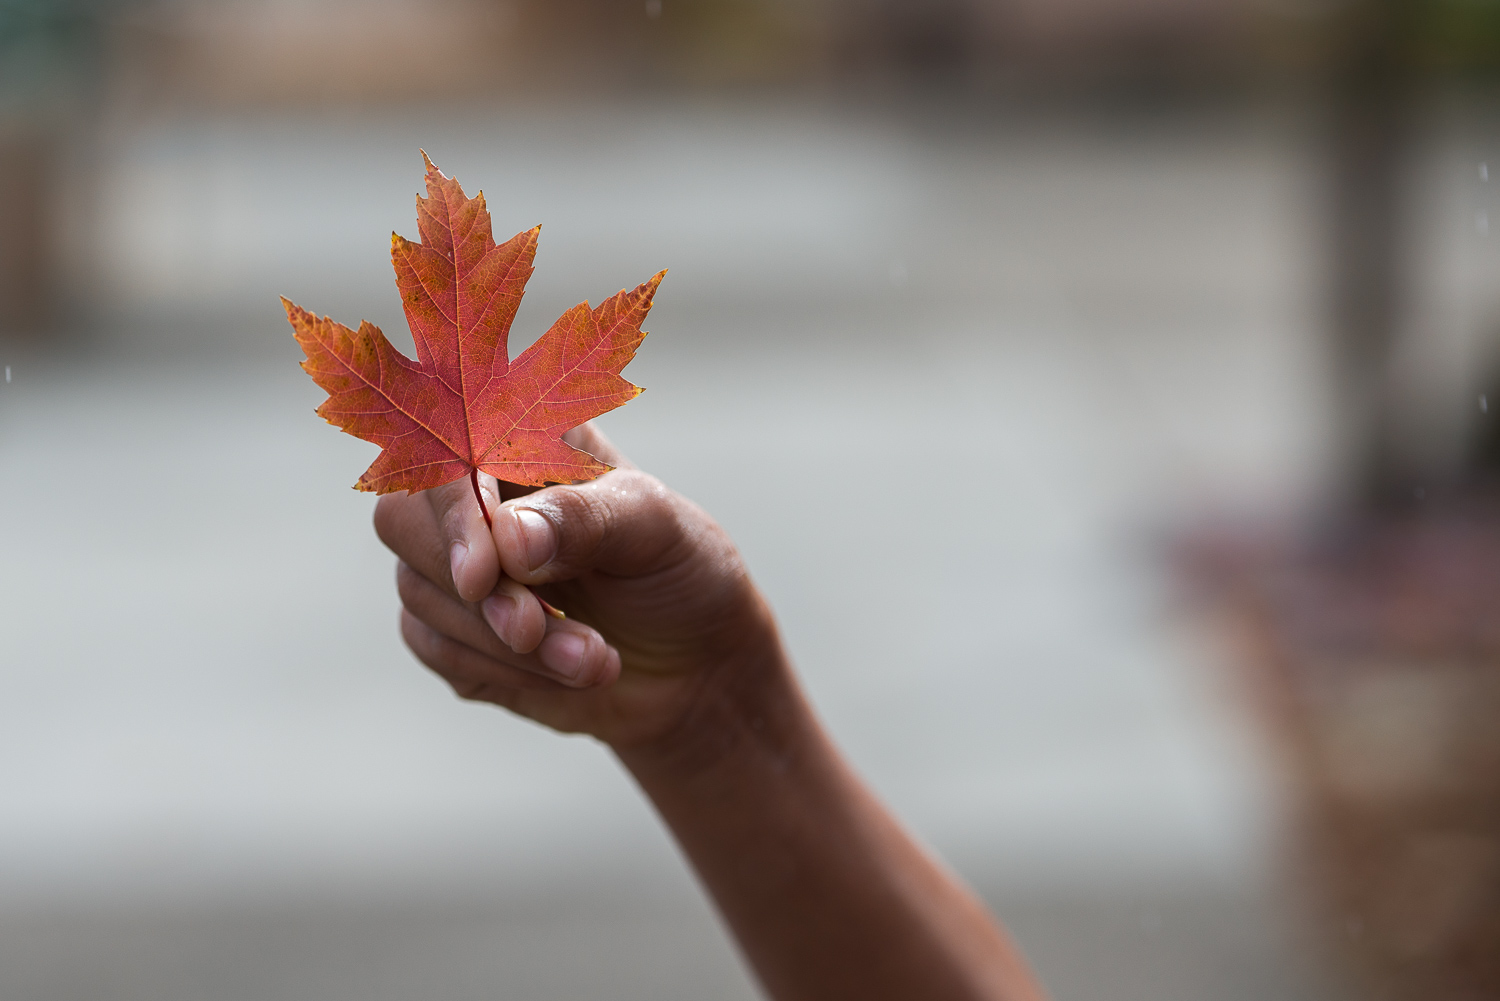 handheld red leaf.jpg